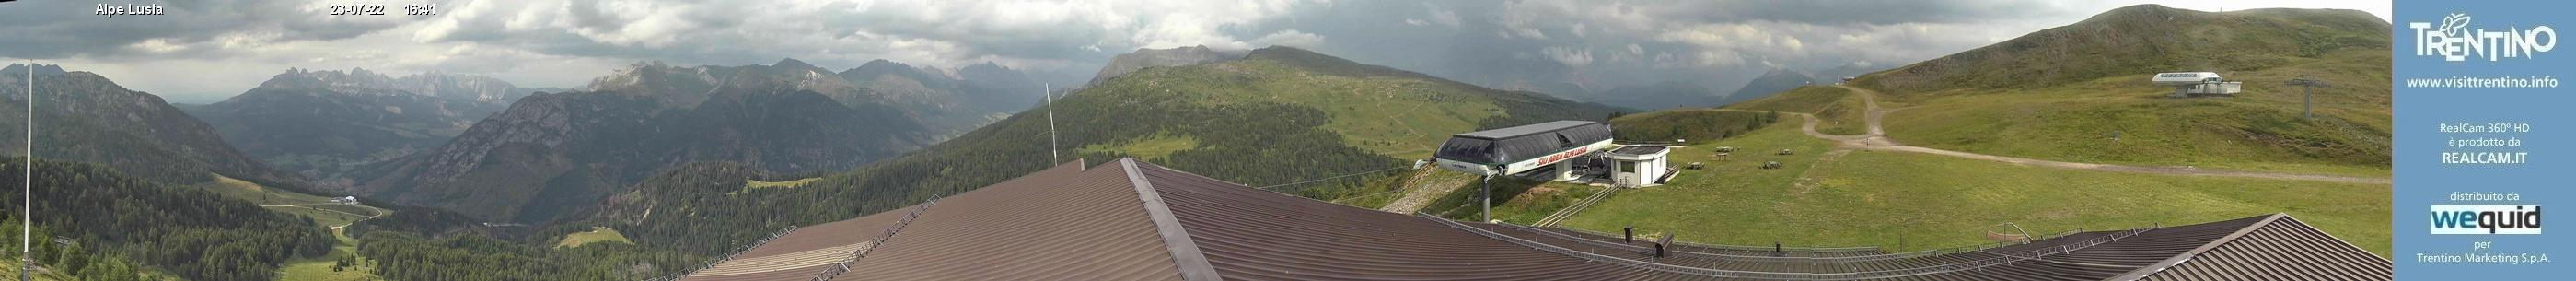 Webcam 360° Alpe Lusia (Moena)